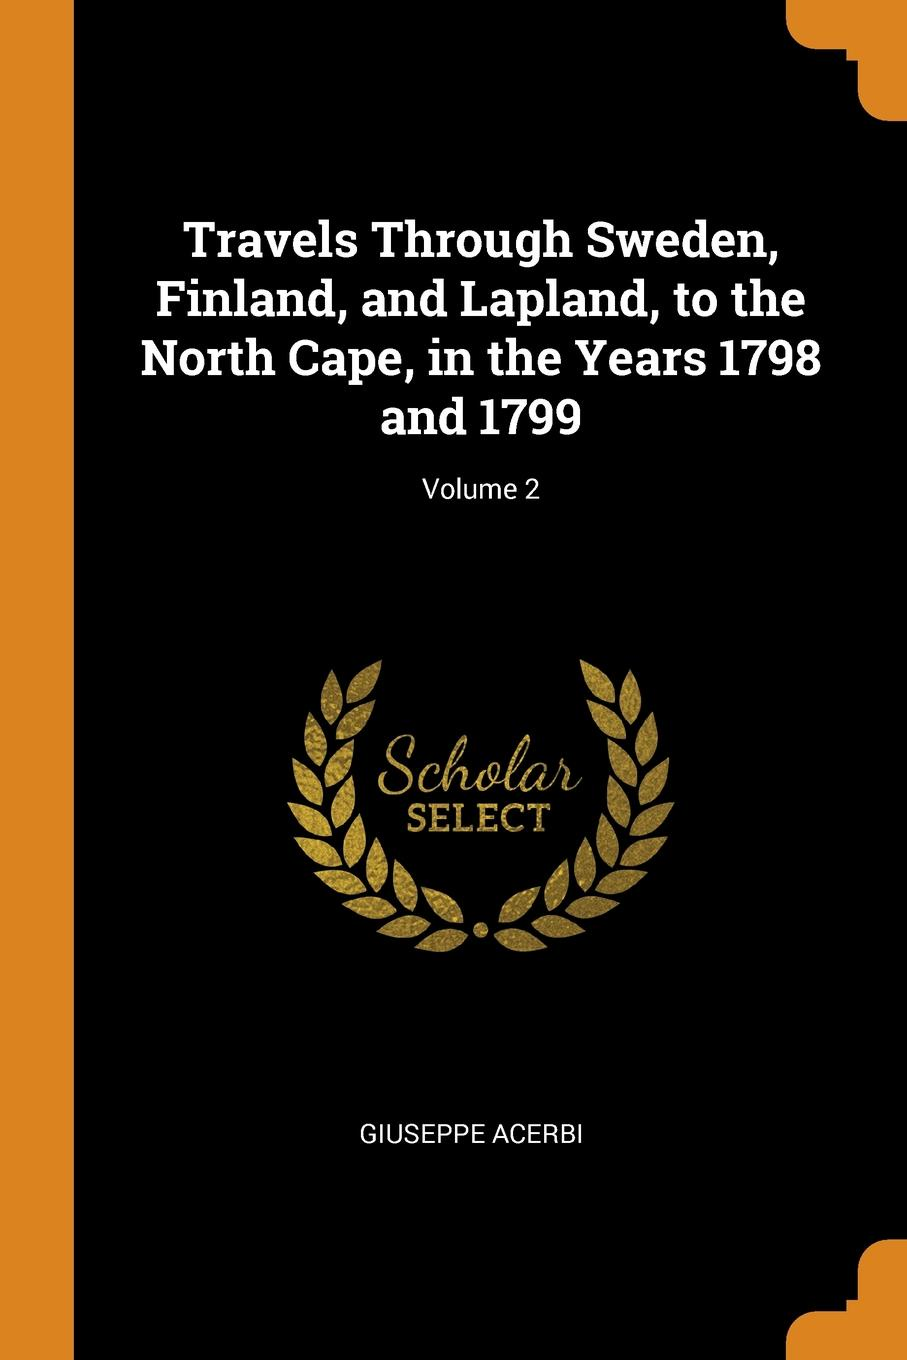 Giuseppe Acerbi Travels Through Sweden, Finland, and Lapland, to the North Cape, in the Years 1798 and 1799; Volume 2 joseph acerbi travels through sweden finland and lapland to the north cape vol 1